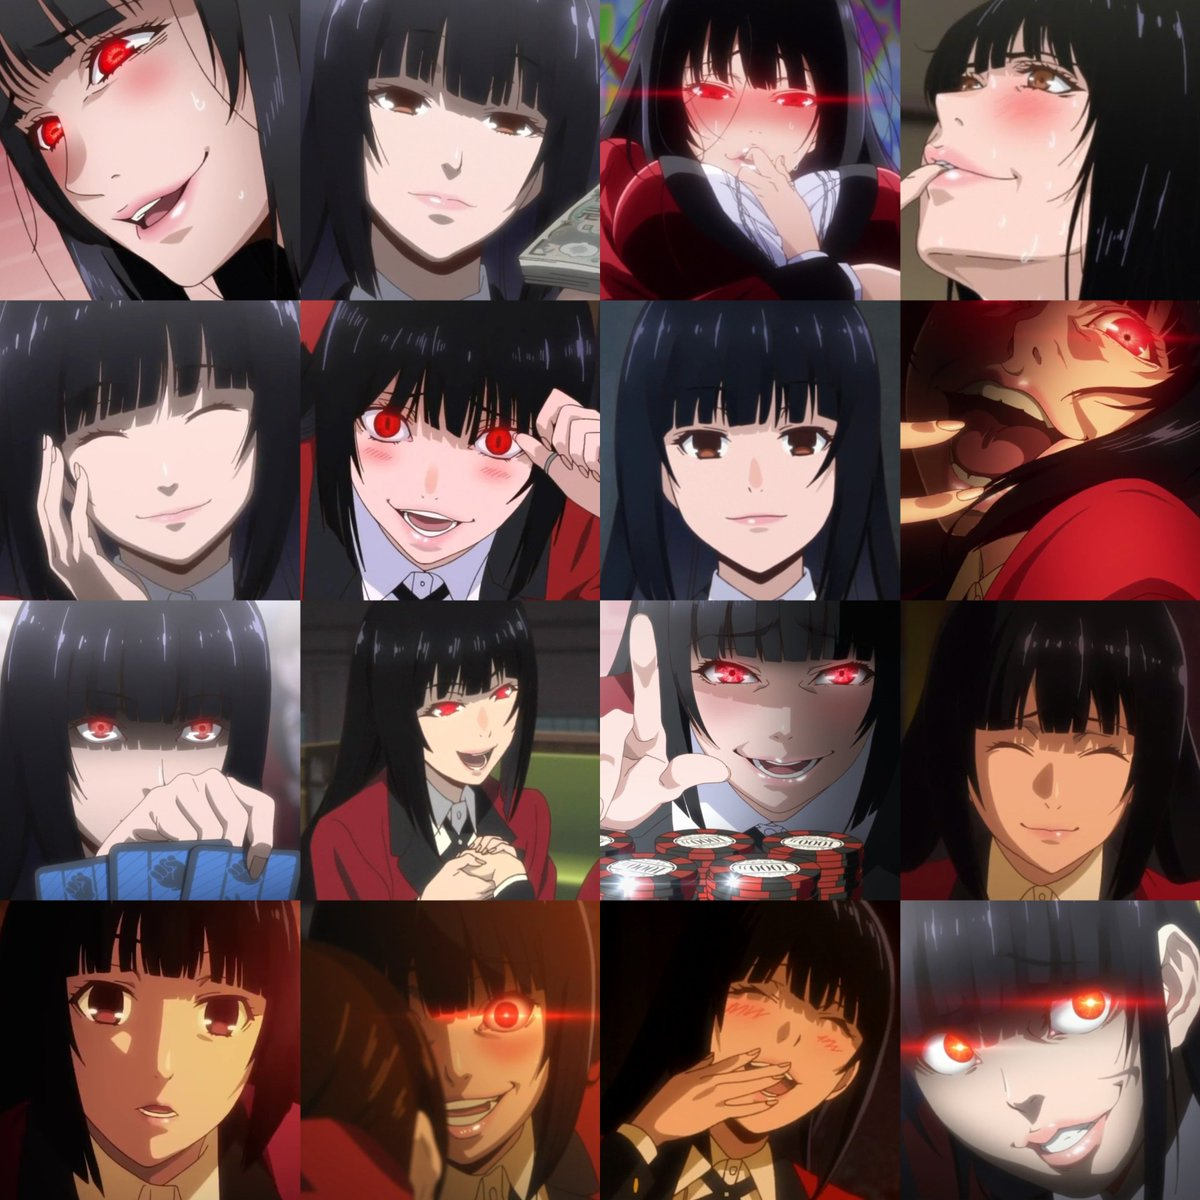 Raise the stakes by voting for Yumeko for Best Protagonist in the #AnimeAwards   Vote:  http:// got.cr/AA-18  &nbsp;  <br>http://pic.twitter.com/KwdaQuGirk